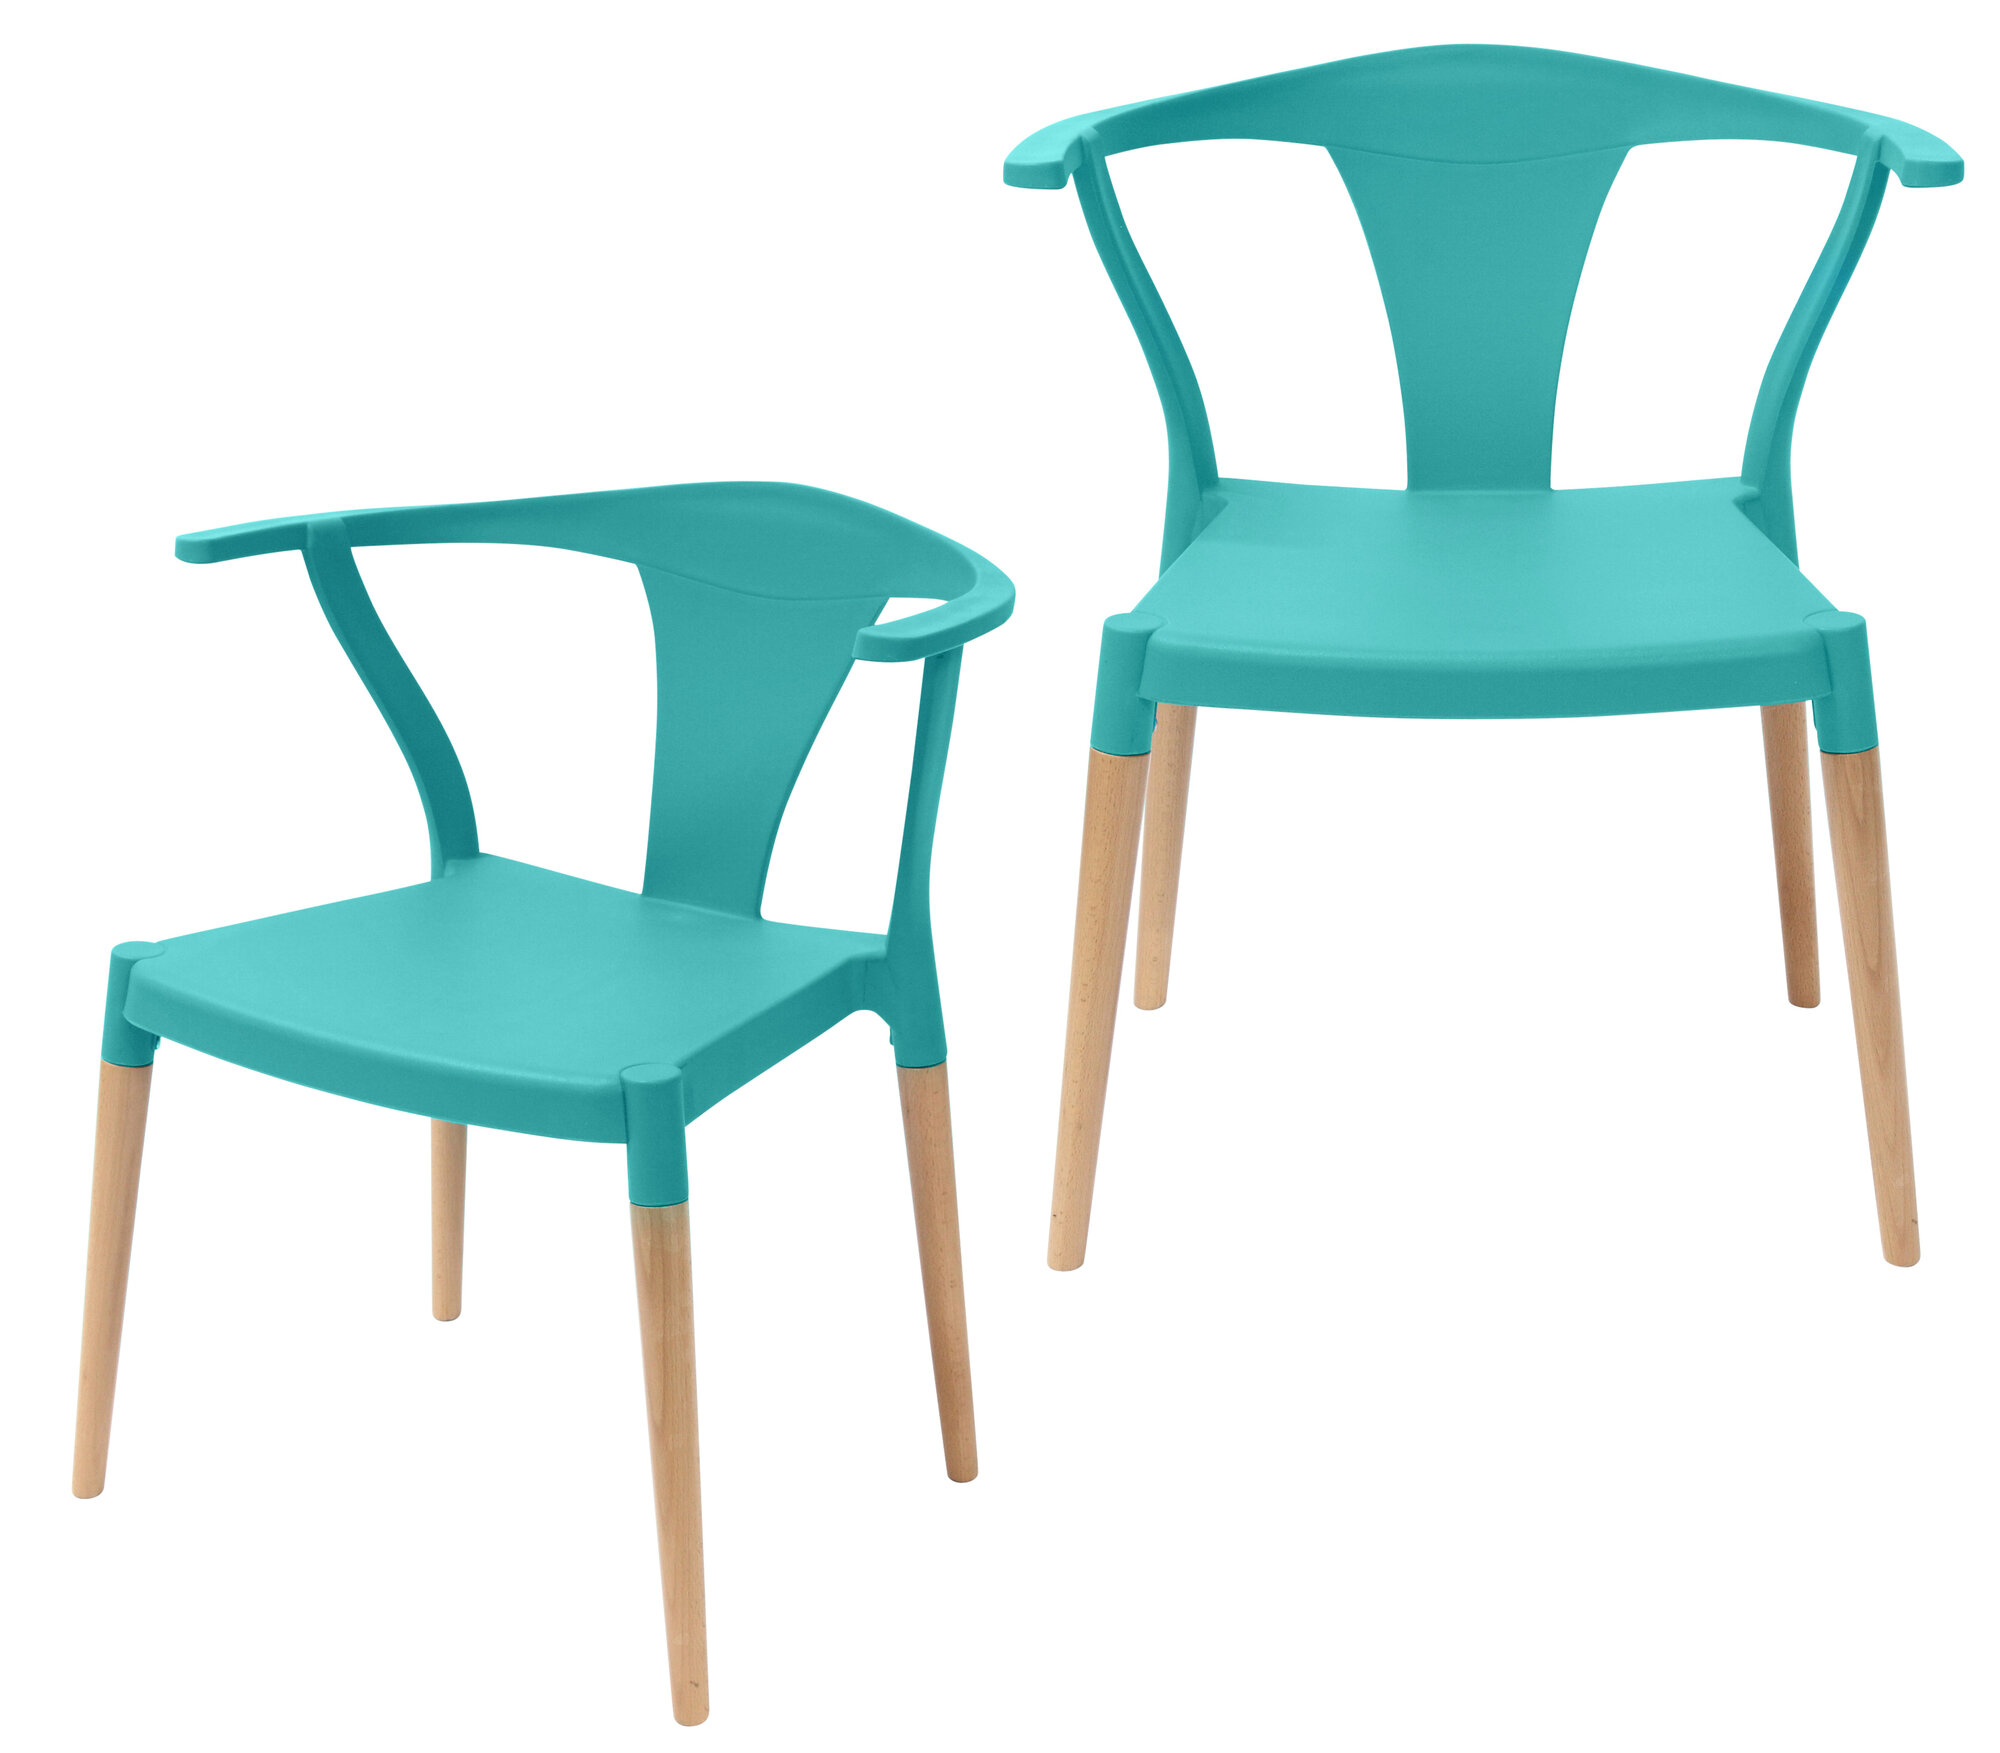 Stupendous Details About Emodern Decor Icon Dining Chair Set Of 2 Cjindustries Chair Design For Home Cjindustriesco